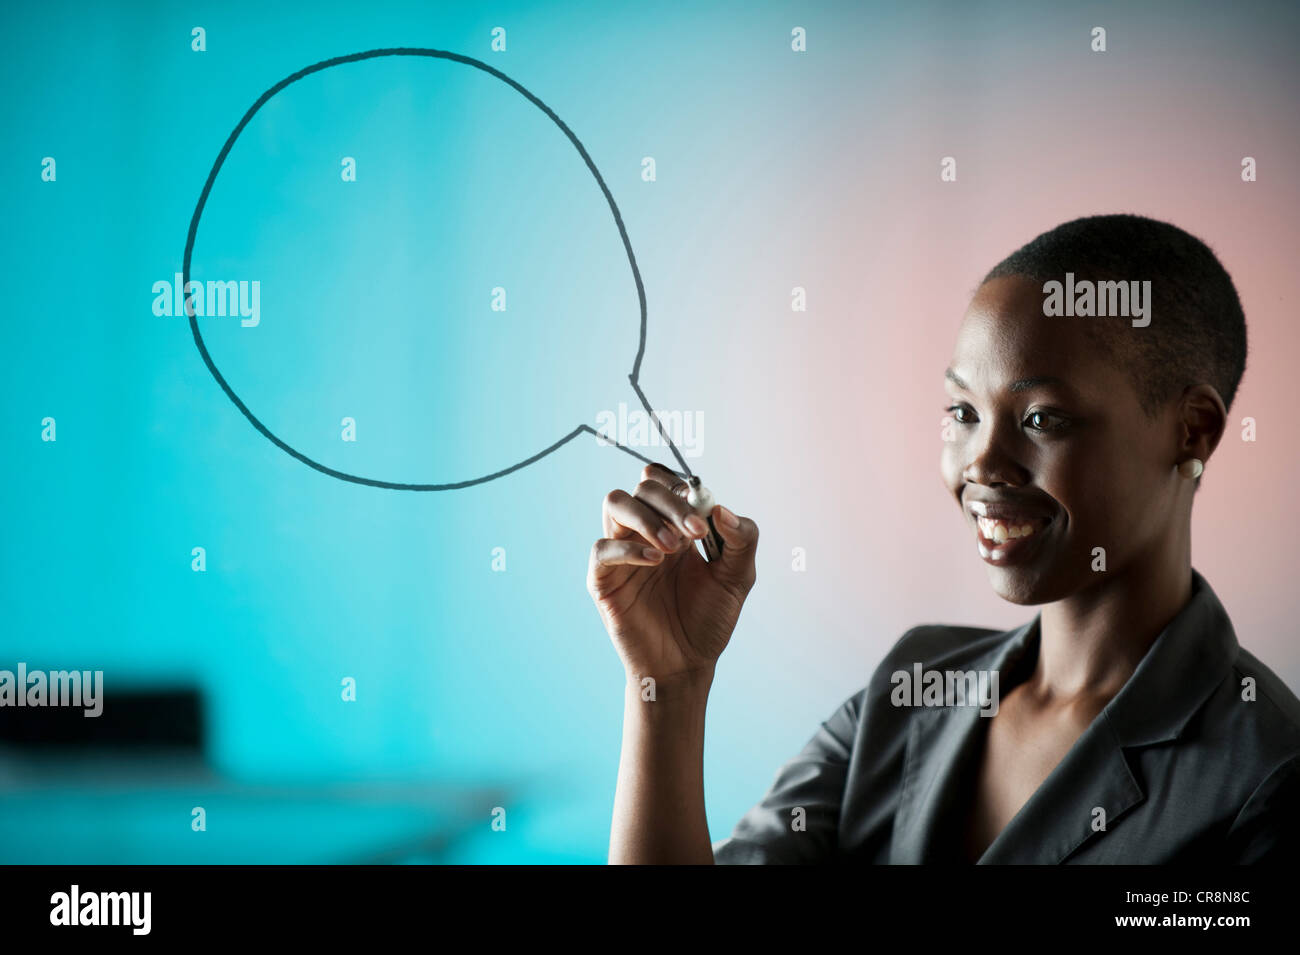 Young woman drawing speech bubble on window - Stock Image